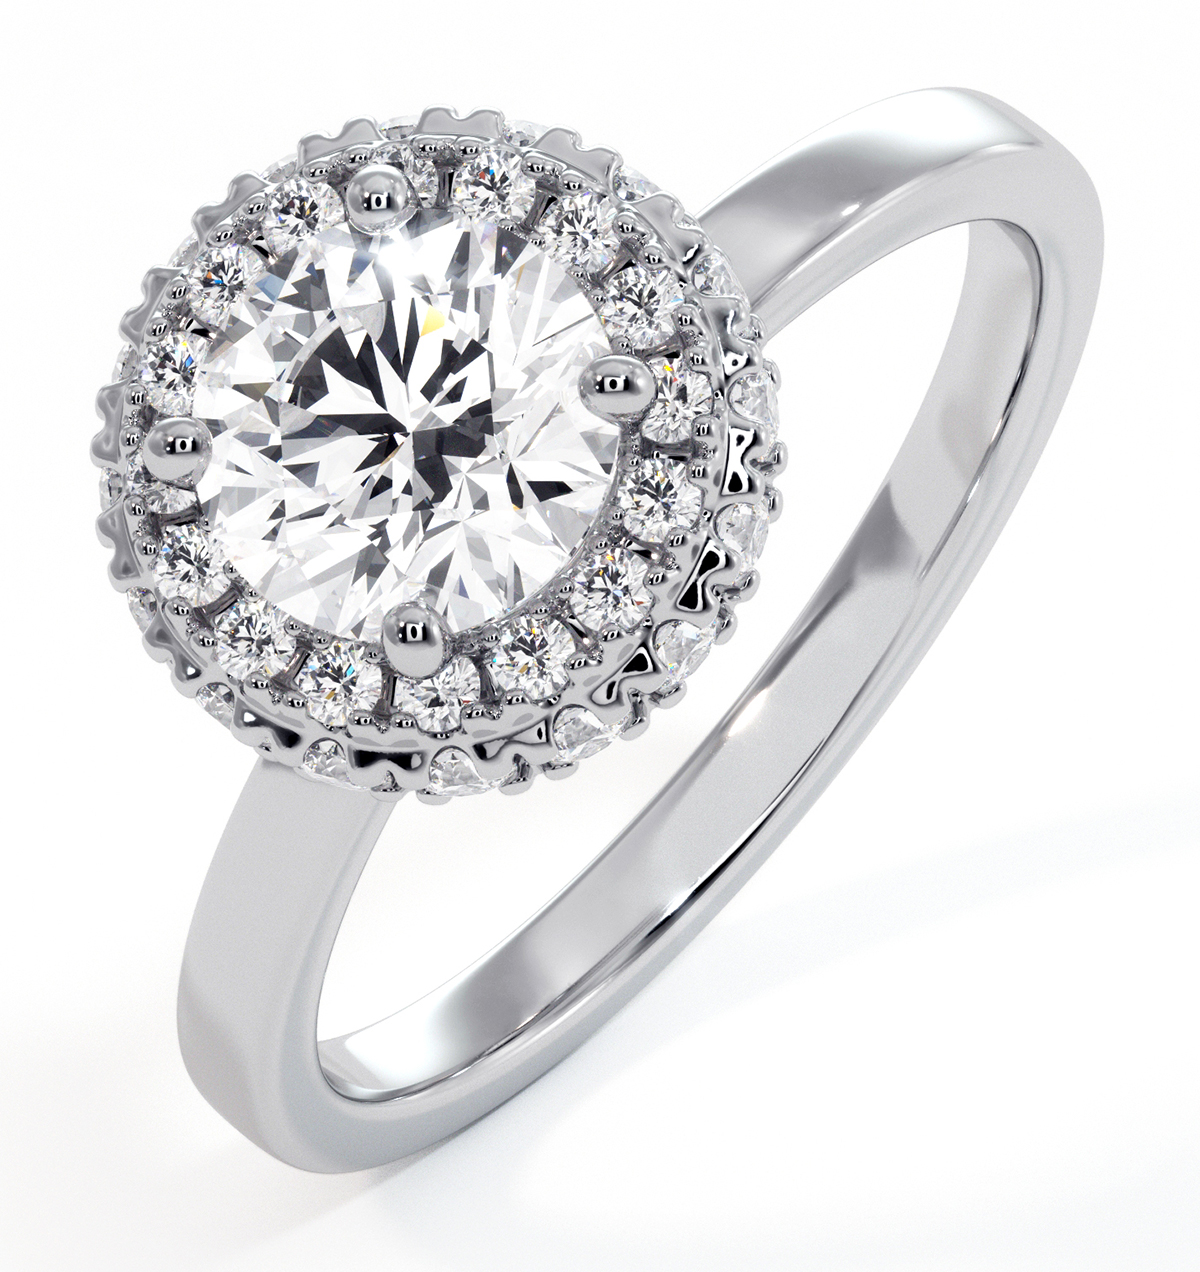 Eleanor GIA Diamond Halo Engagement Ring 18K White Gold 1.09ct G/SI2 - image 1